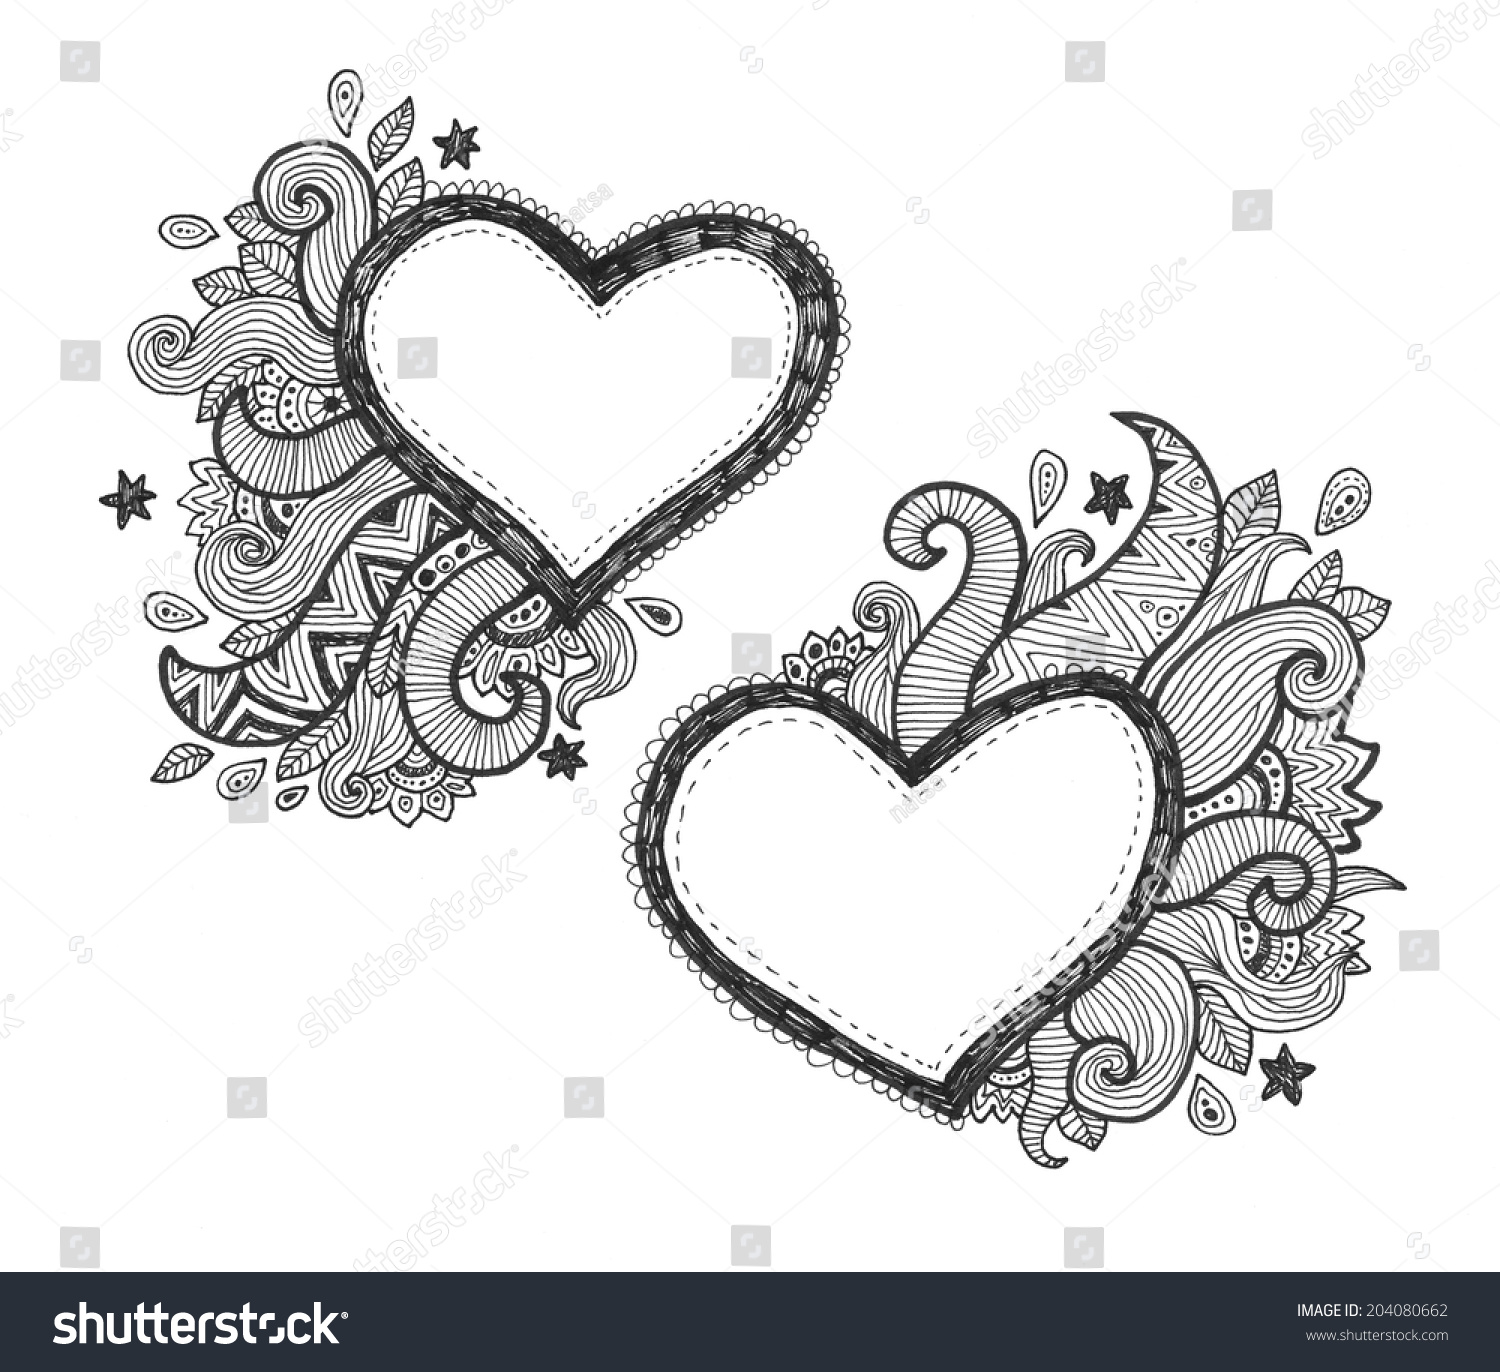 Heart frames for text with doodle ornaments   EZ Canvas